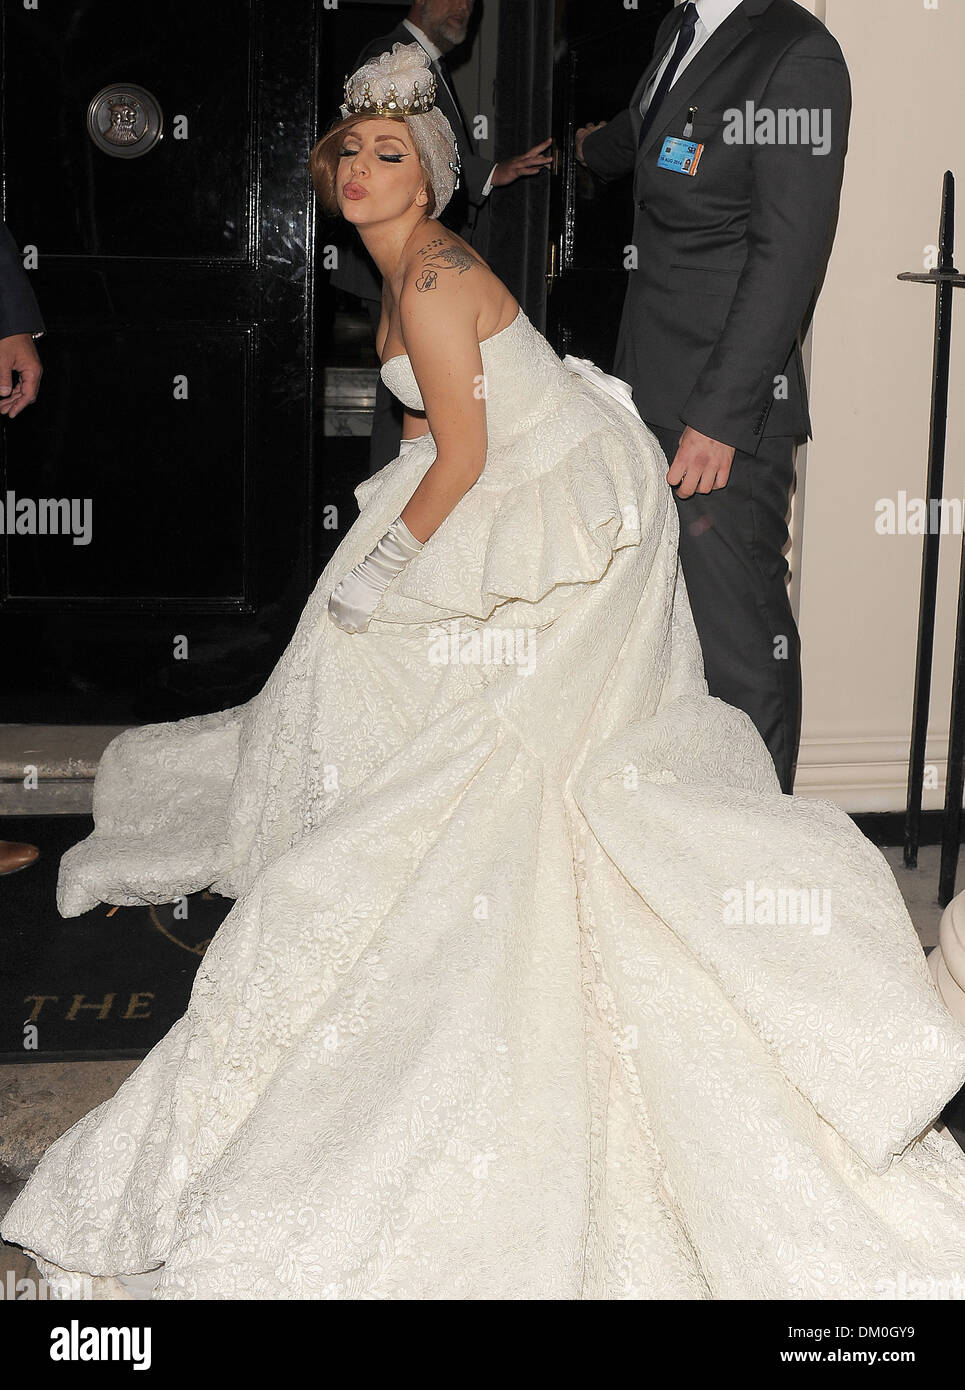 562d37a5e50 Lady Gaga arriving at Arts Club wearing a stunning wedding dress complete  with tiara London England - 10.09.12